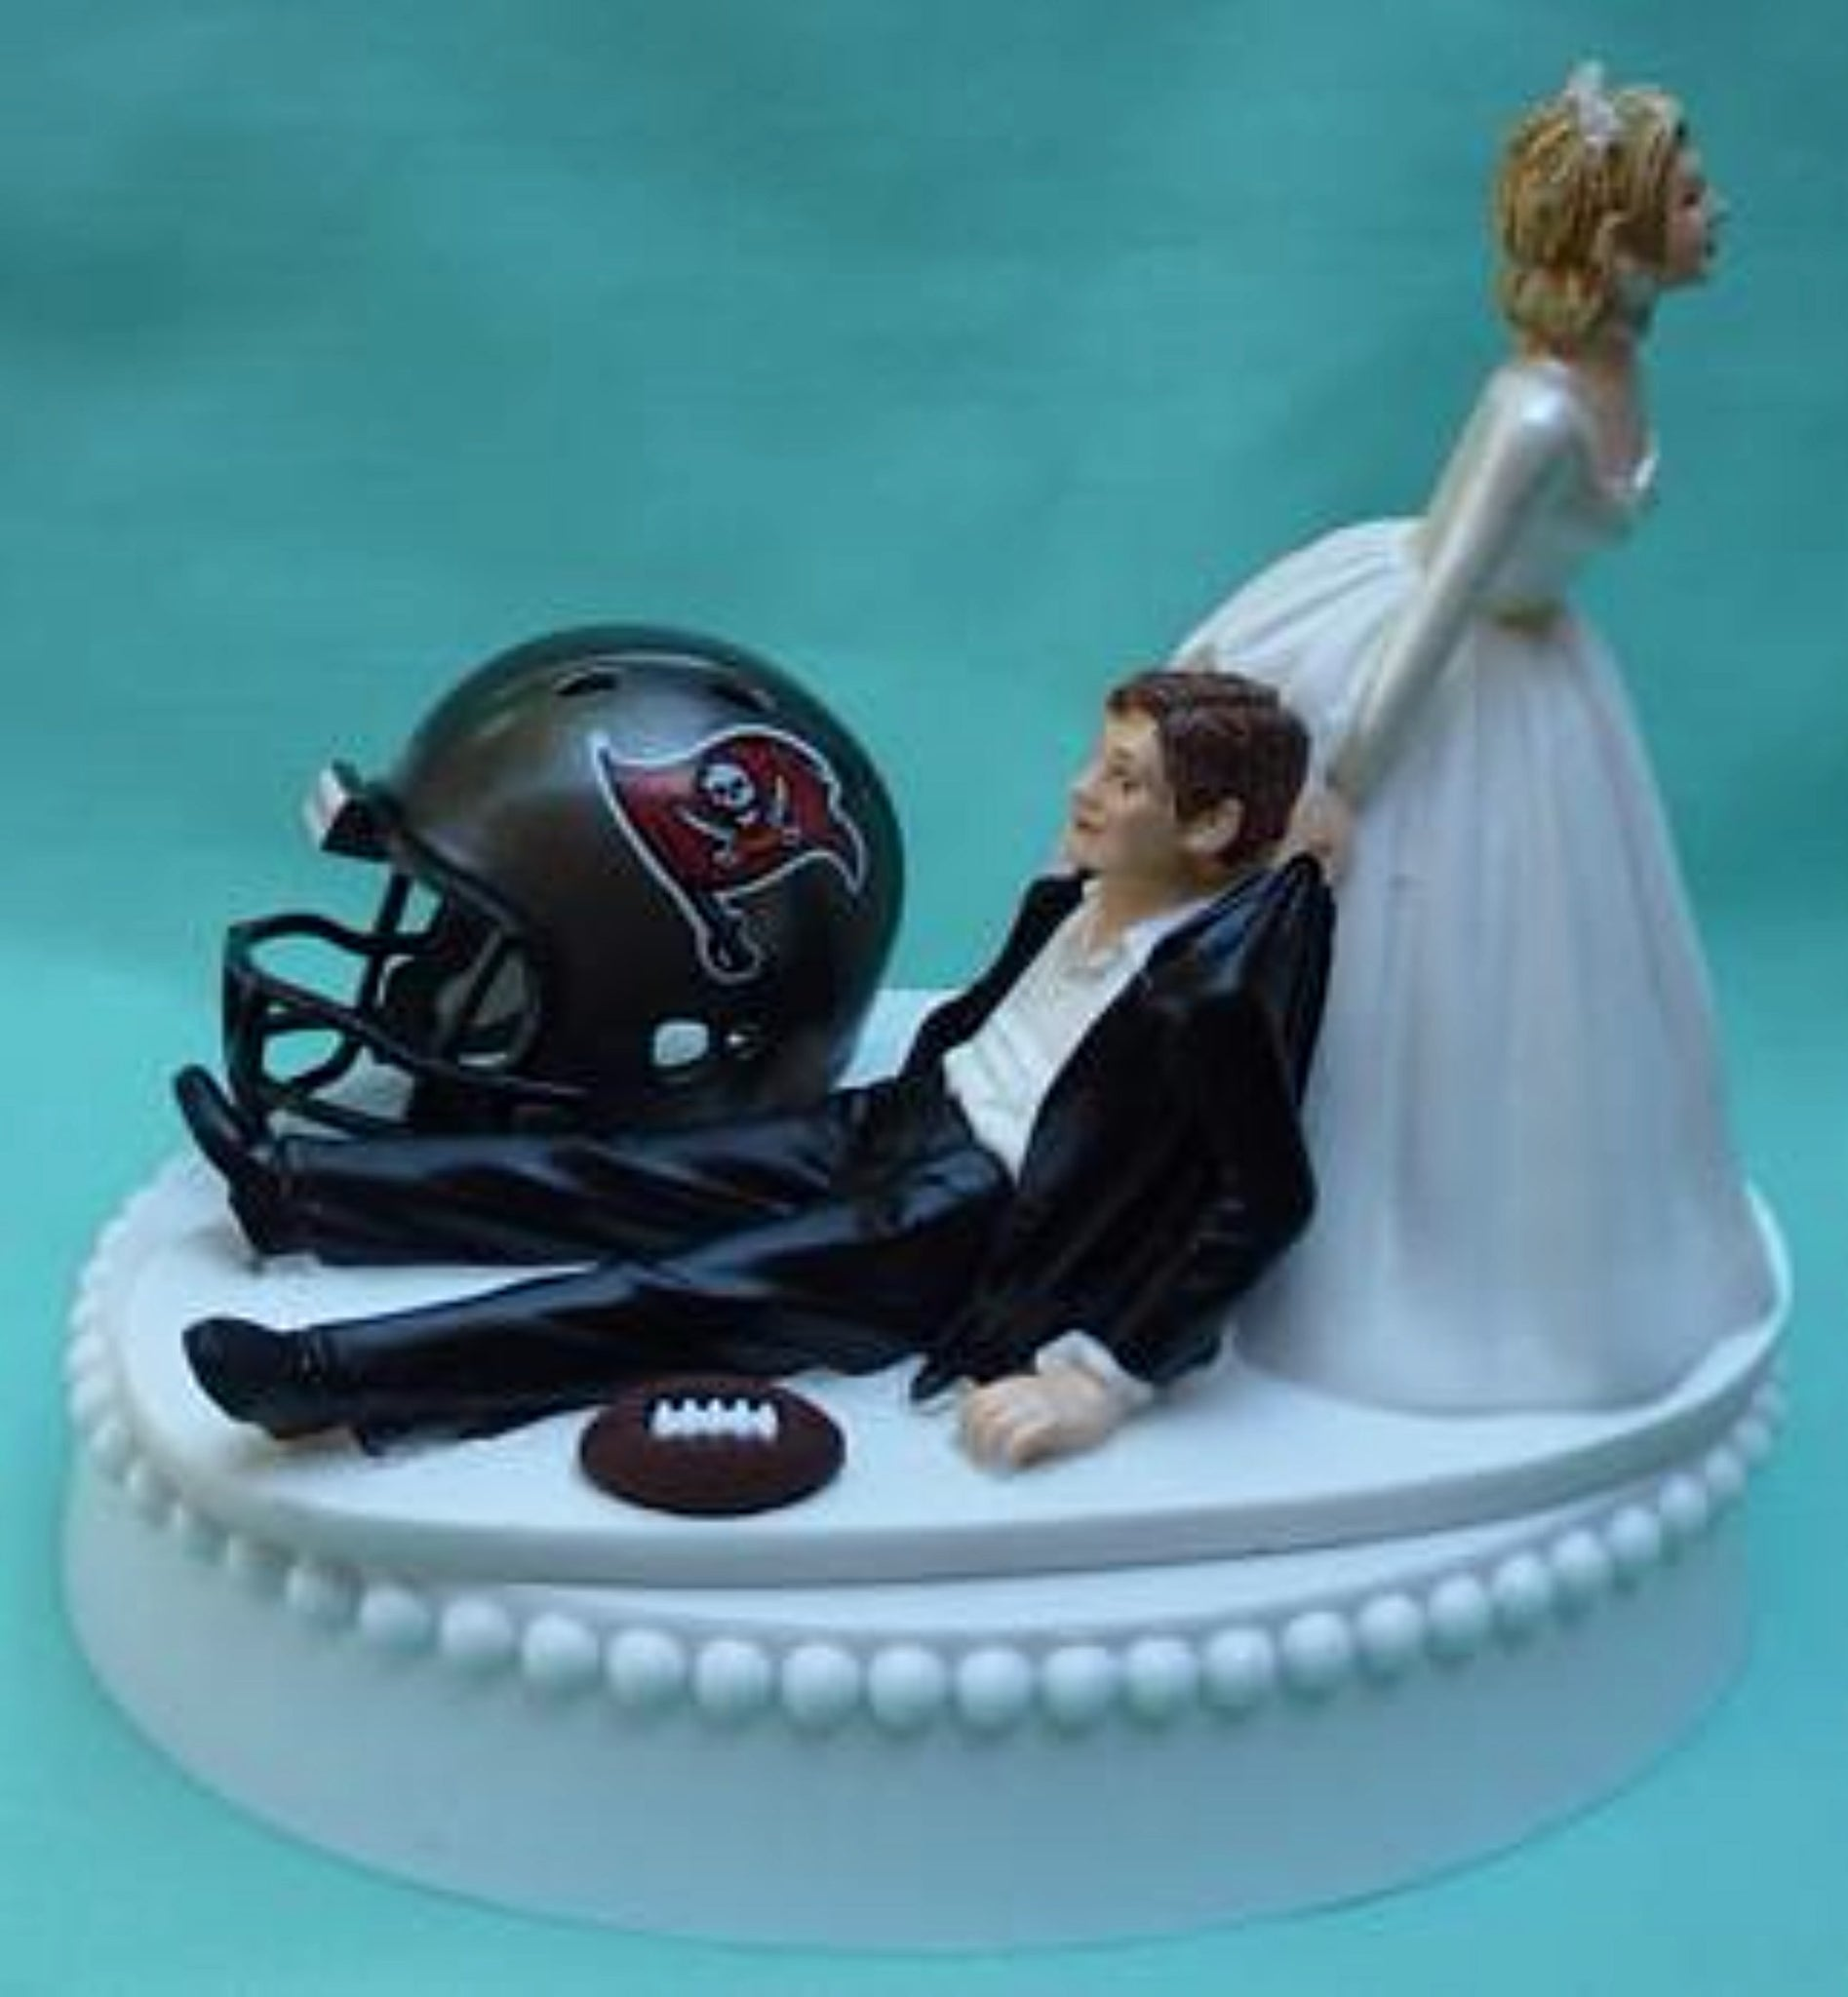 Tampa Bay Buccaneers cake topper wedding Bucs FunWeddingThings.com reception TB NFL football fans sports humorous